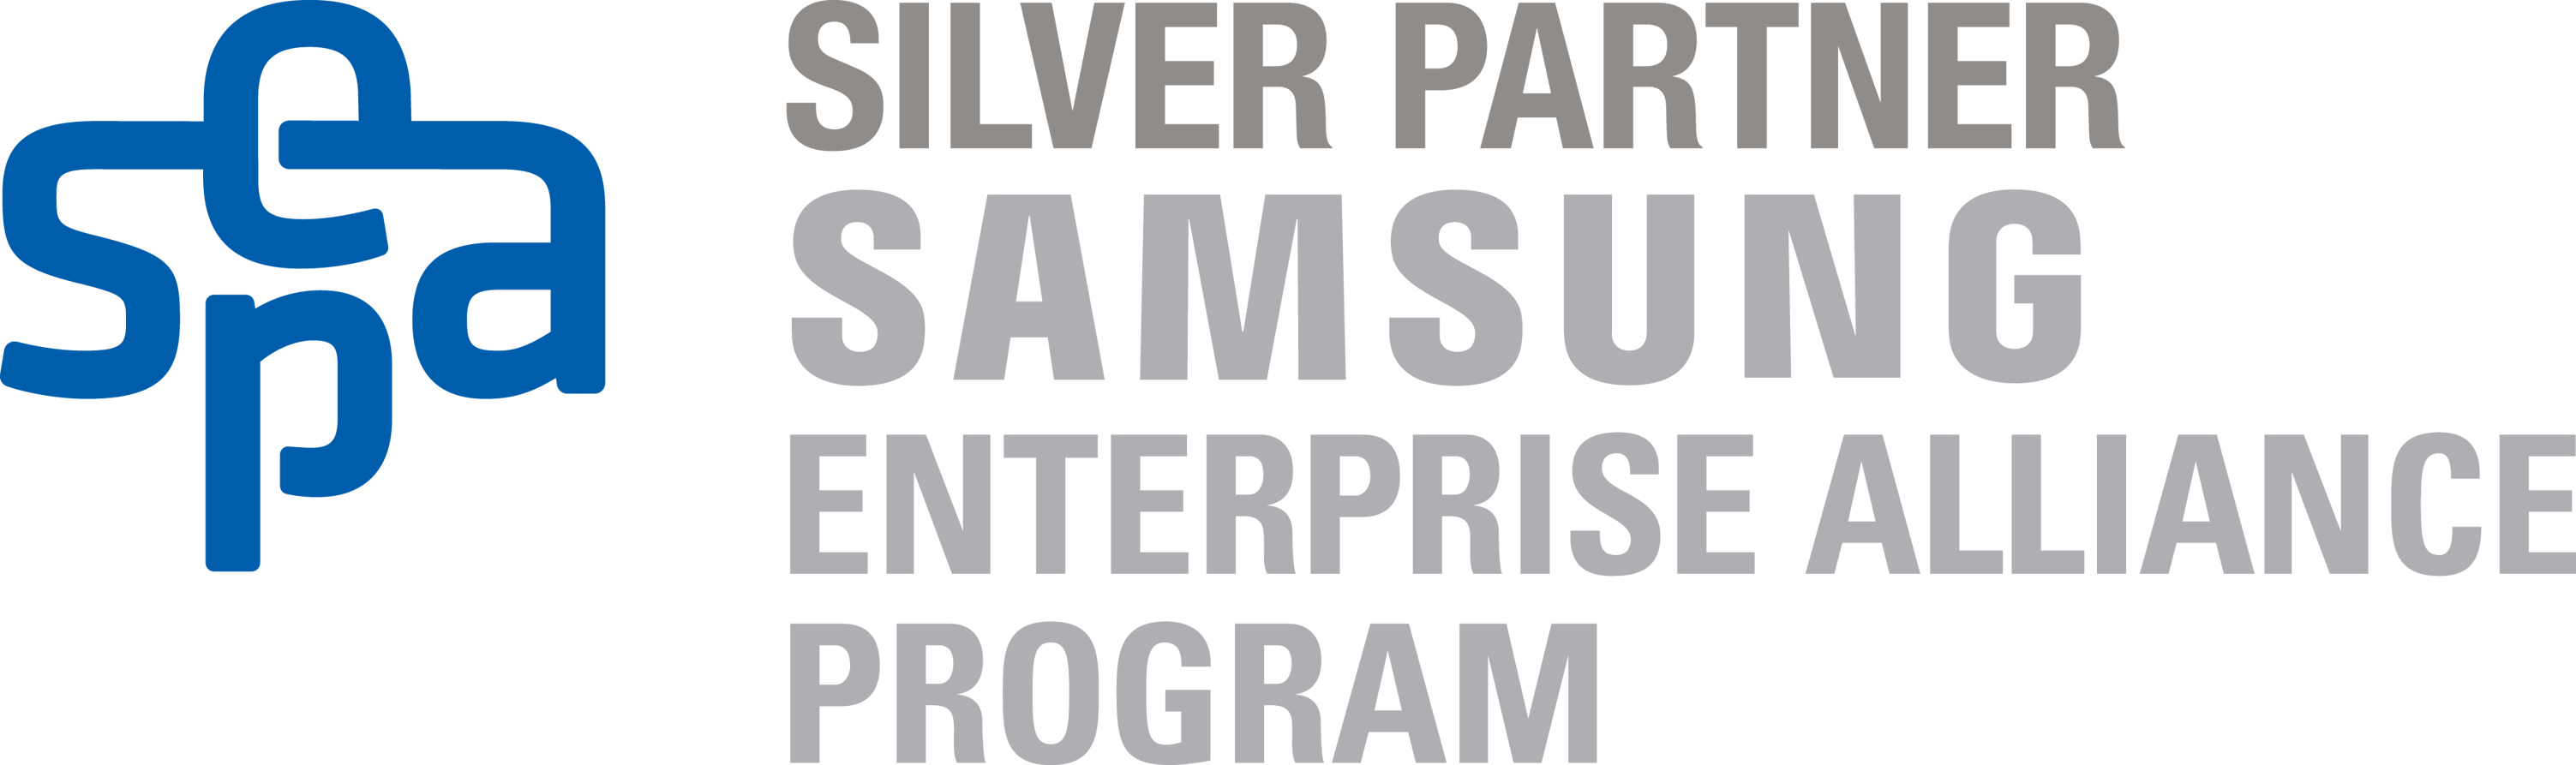 Samsung Enterprise Alliance Program - Silver Partner